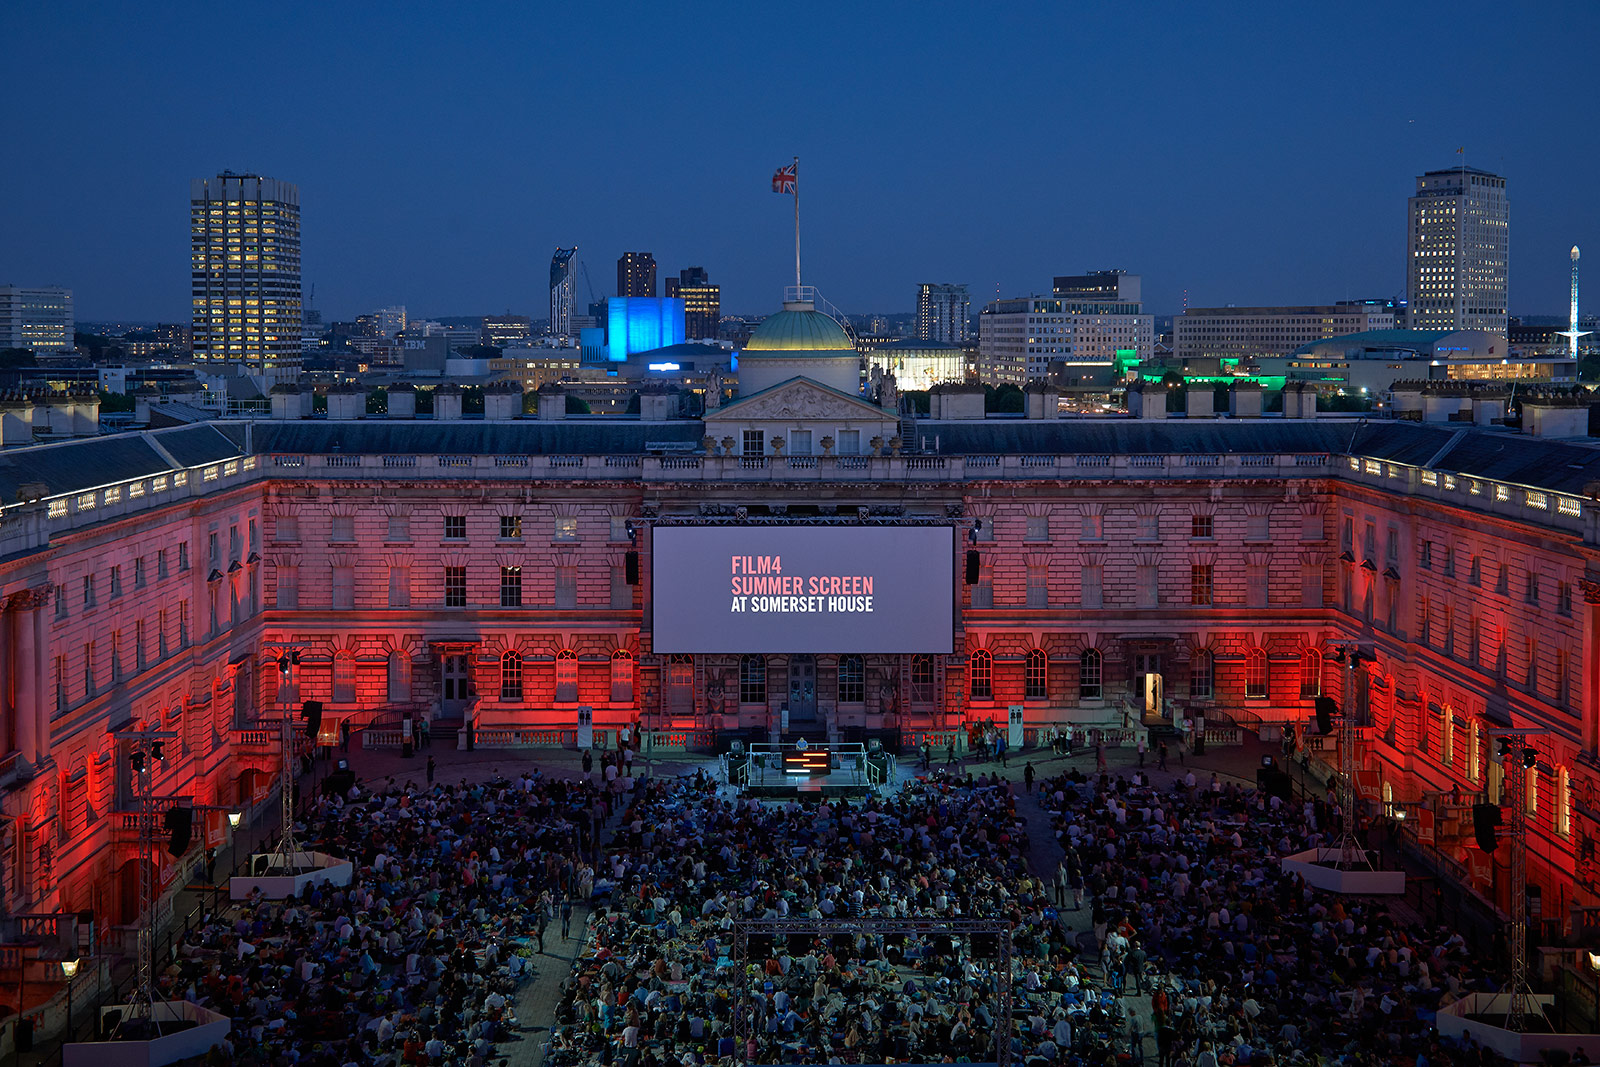 Film4 summer screen at somerset house  james bryant photography 1